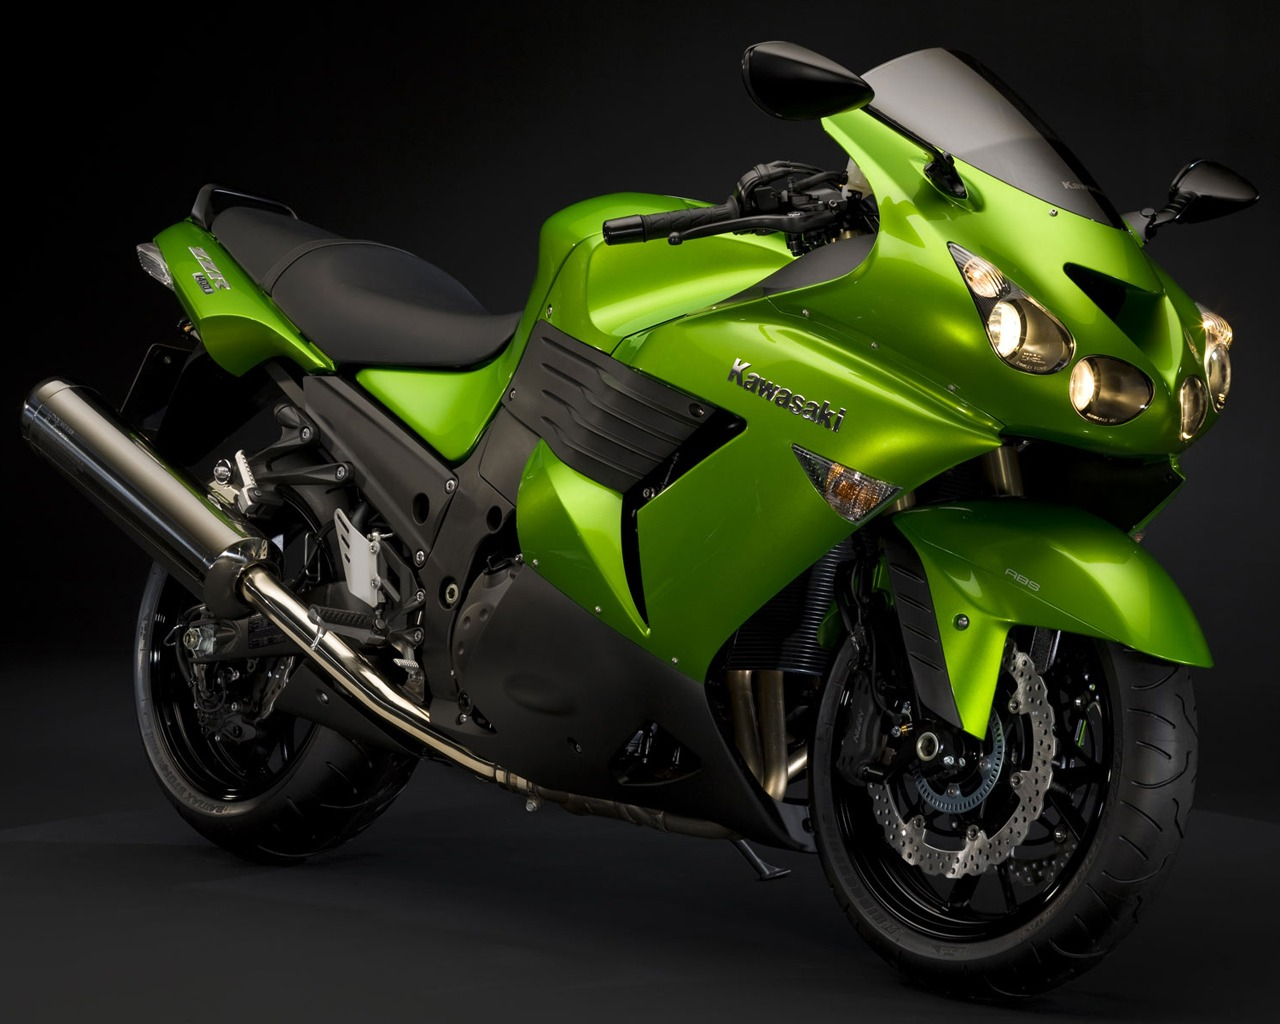 Kawasaki Ninja IPhone Wallpaper 89 Source ZZR 1400 Motorcycles Wallpapers In Jpg